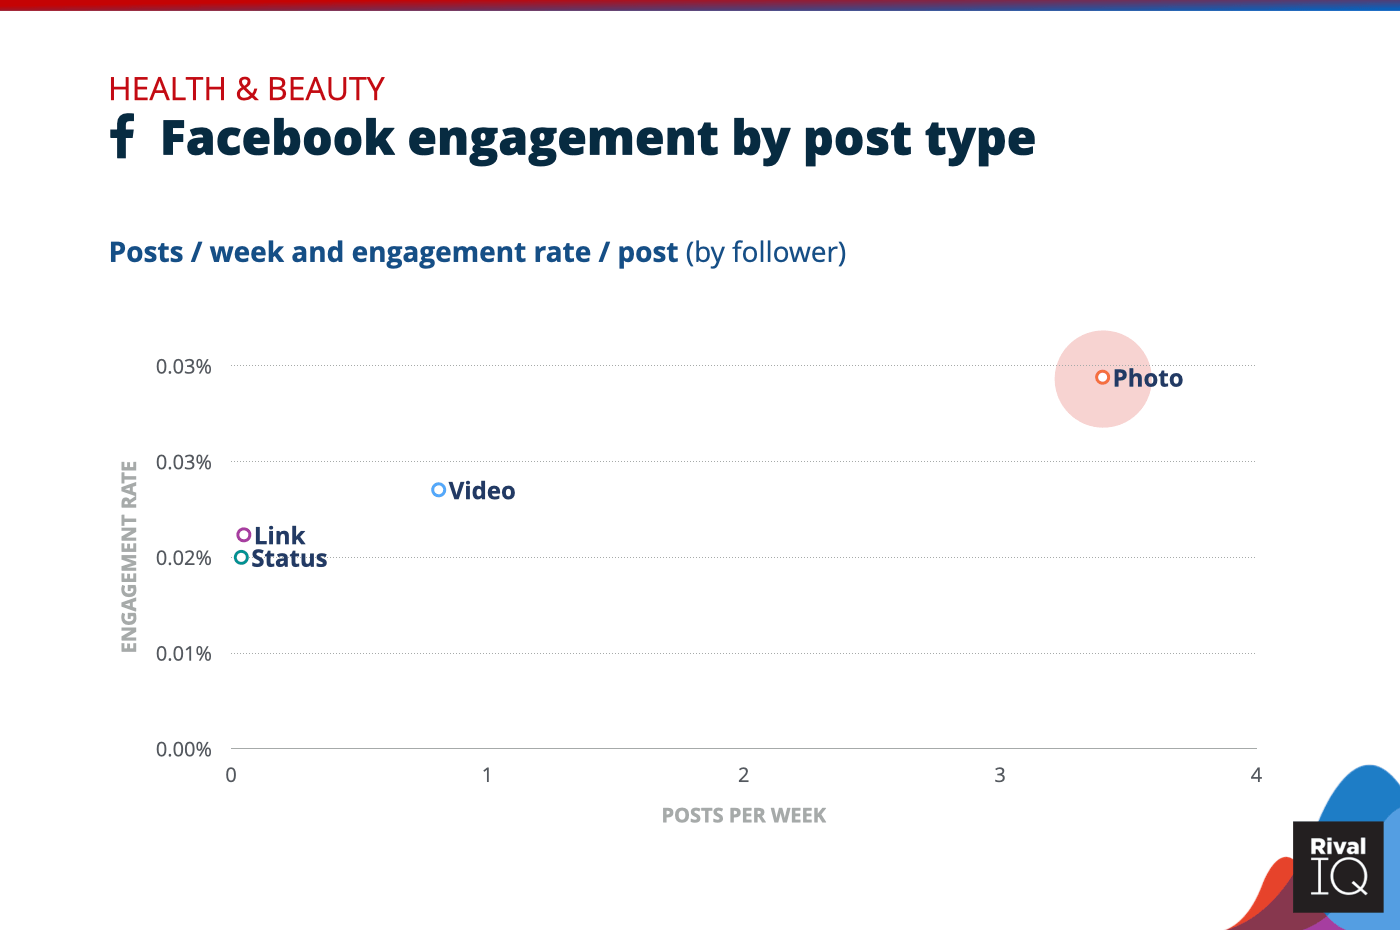 Chart of Facebook posts per week and engagement rate by post type, Health & Beauty